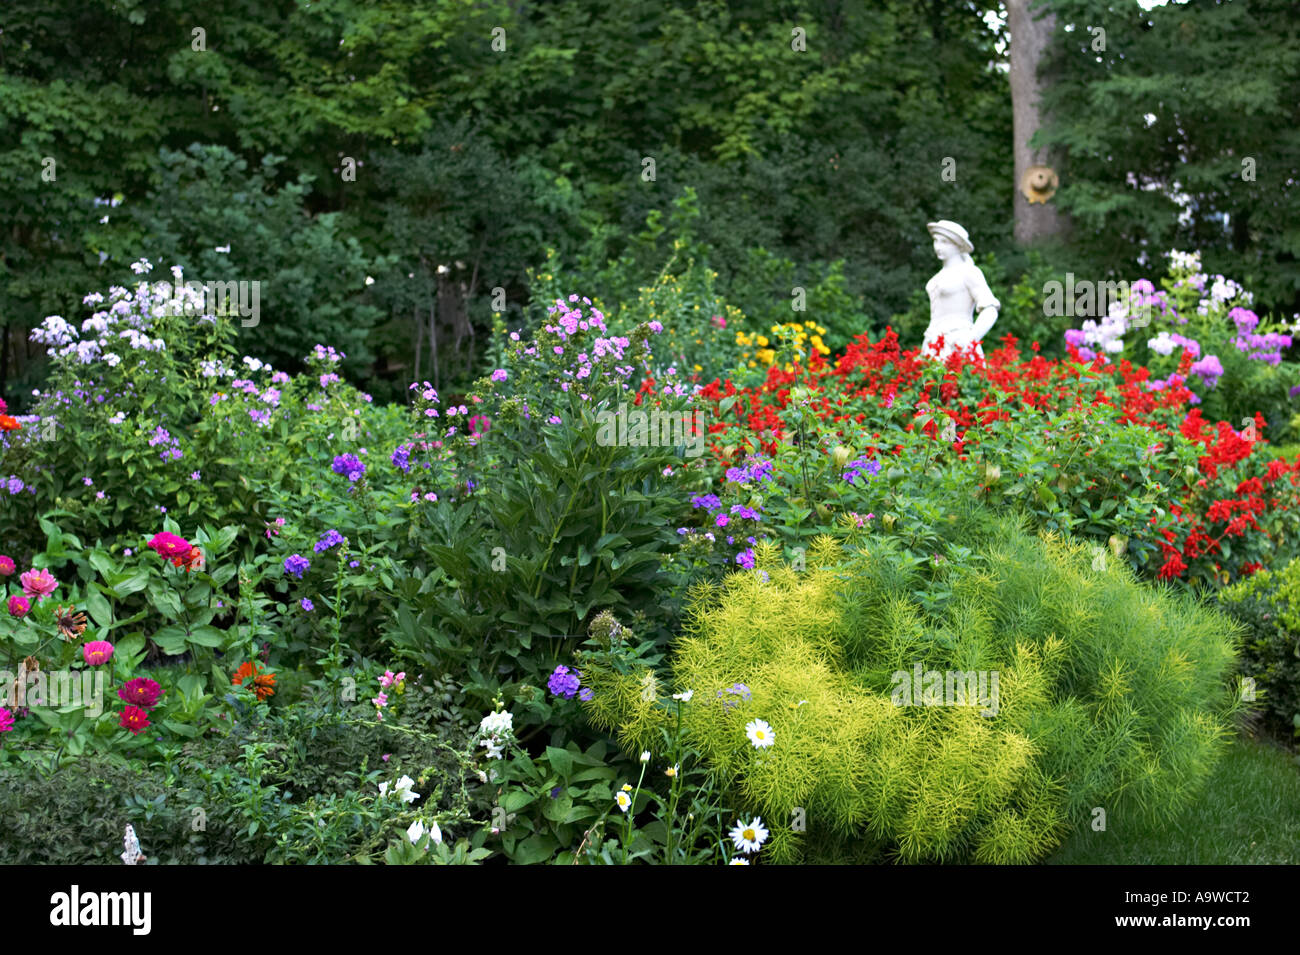 WISCONSIN Lake Geneva Lush Private Garden Of Lakefront Home Garden Statue  Of Young Women Amid Flowers